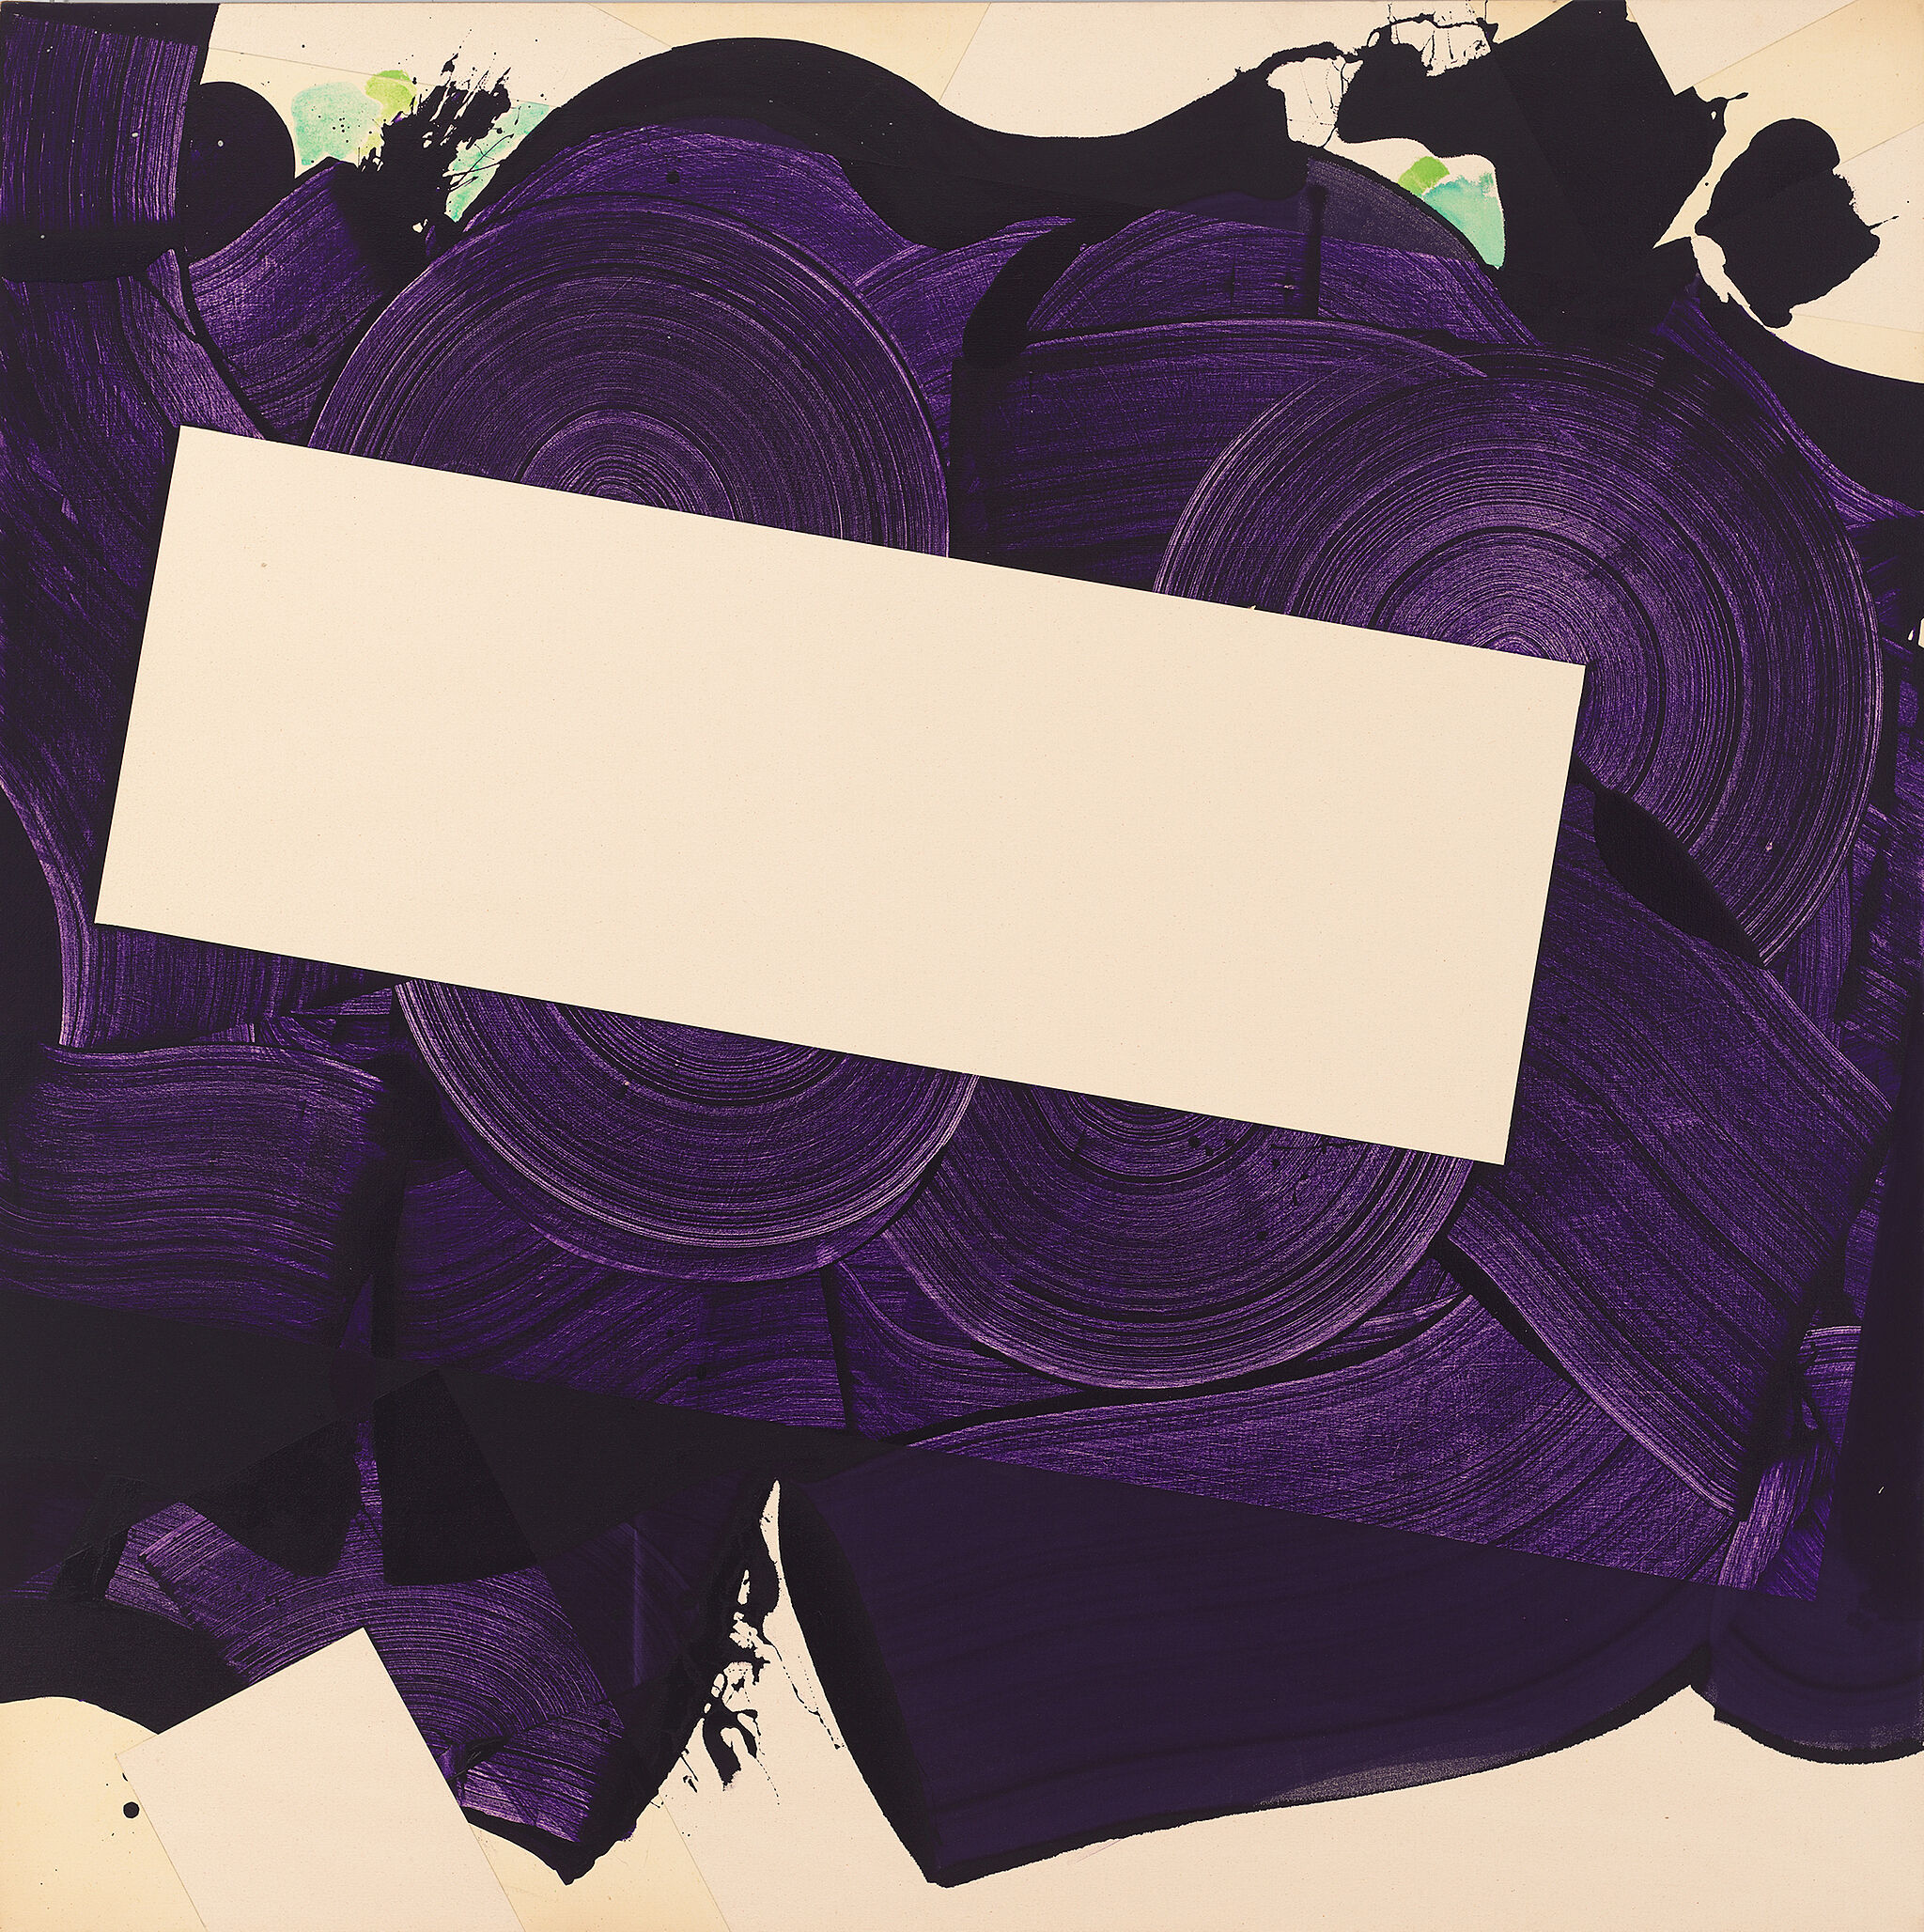 Atop a neutral tan background, there is a swirl of purple paint stroke. On top of the purple stroke, there is a neutral tan rectangle.